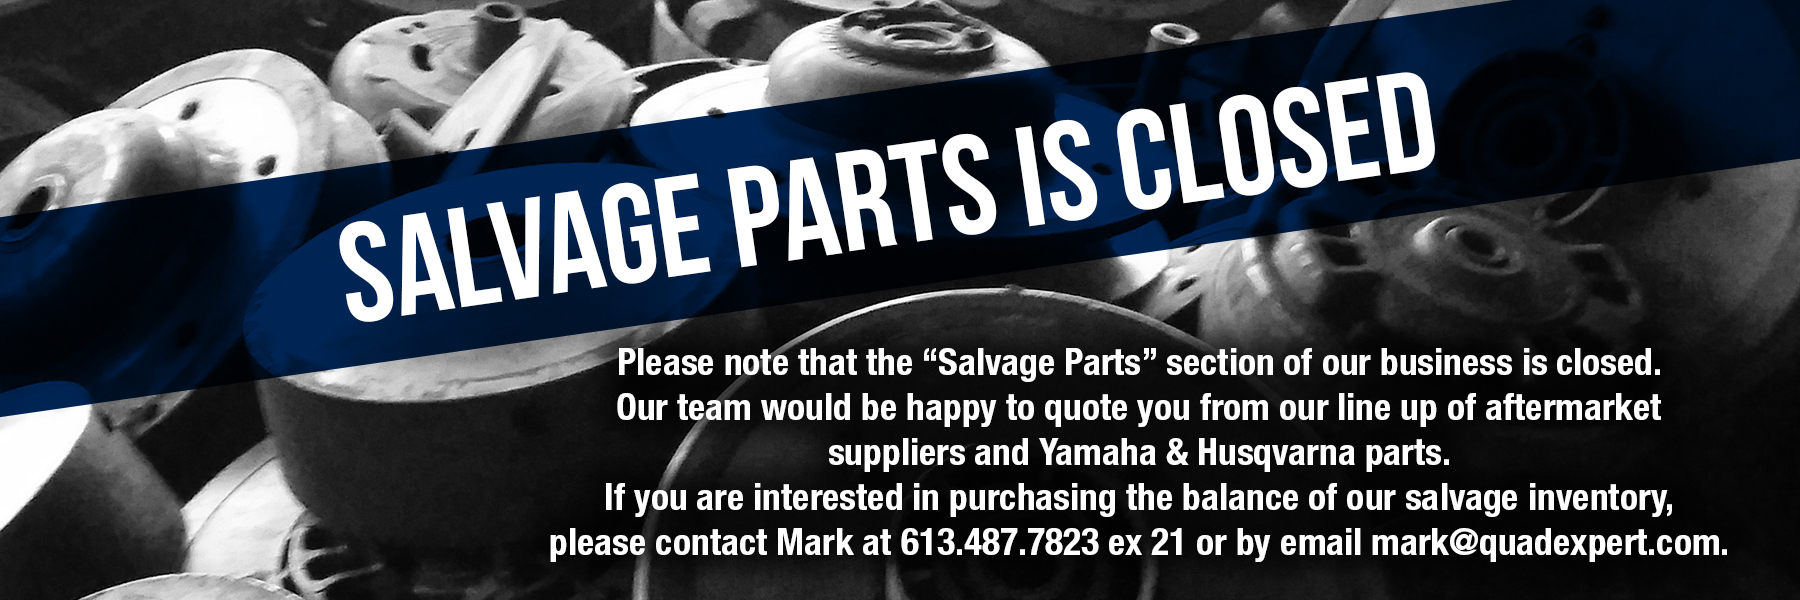 SalvageParts2